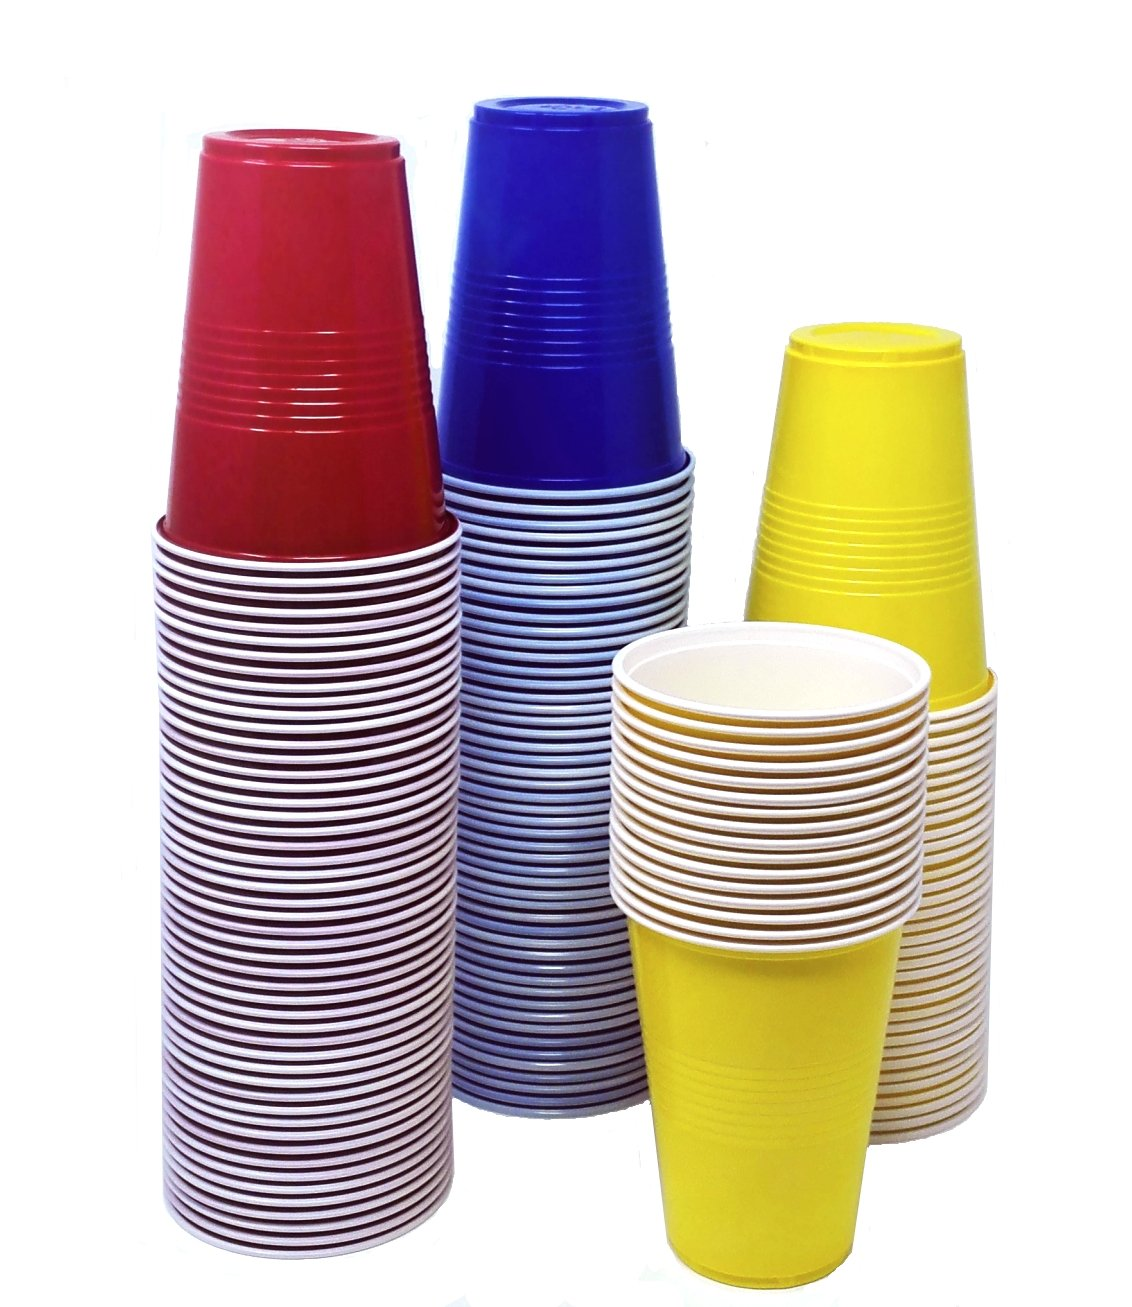 TashiBox 16 oz disposable plastic party cups - 150 count - Assorted color: 50 red, 50 blue, 50 yellow cups